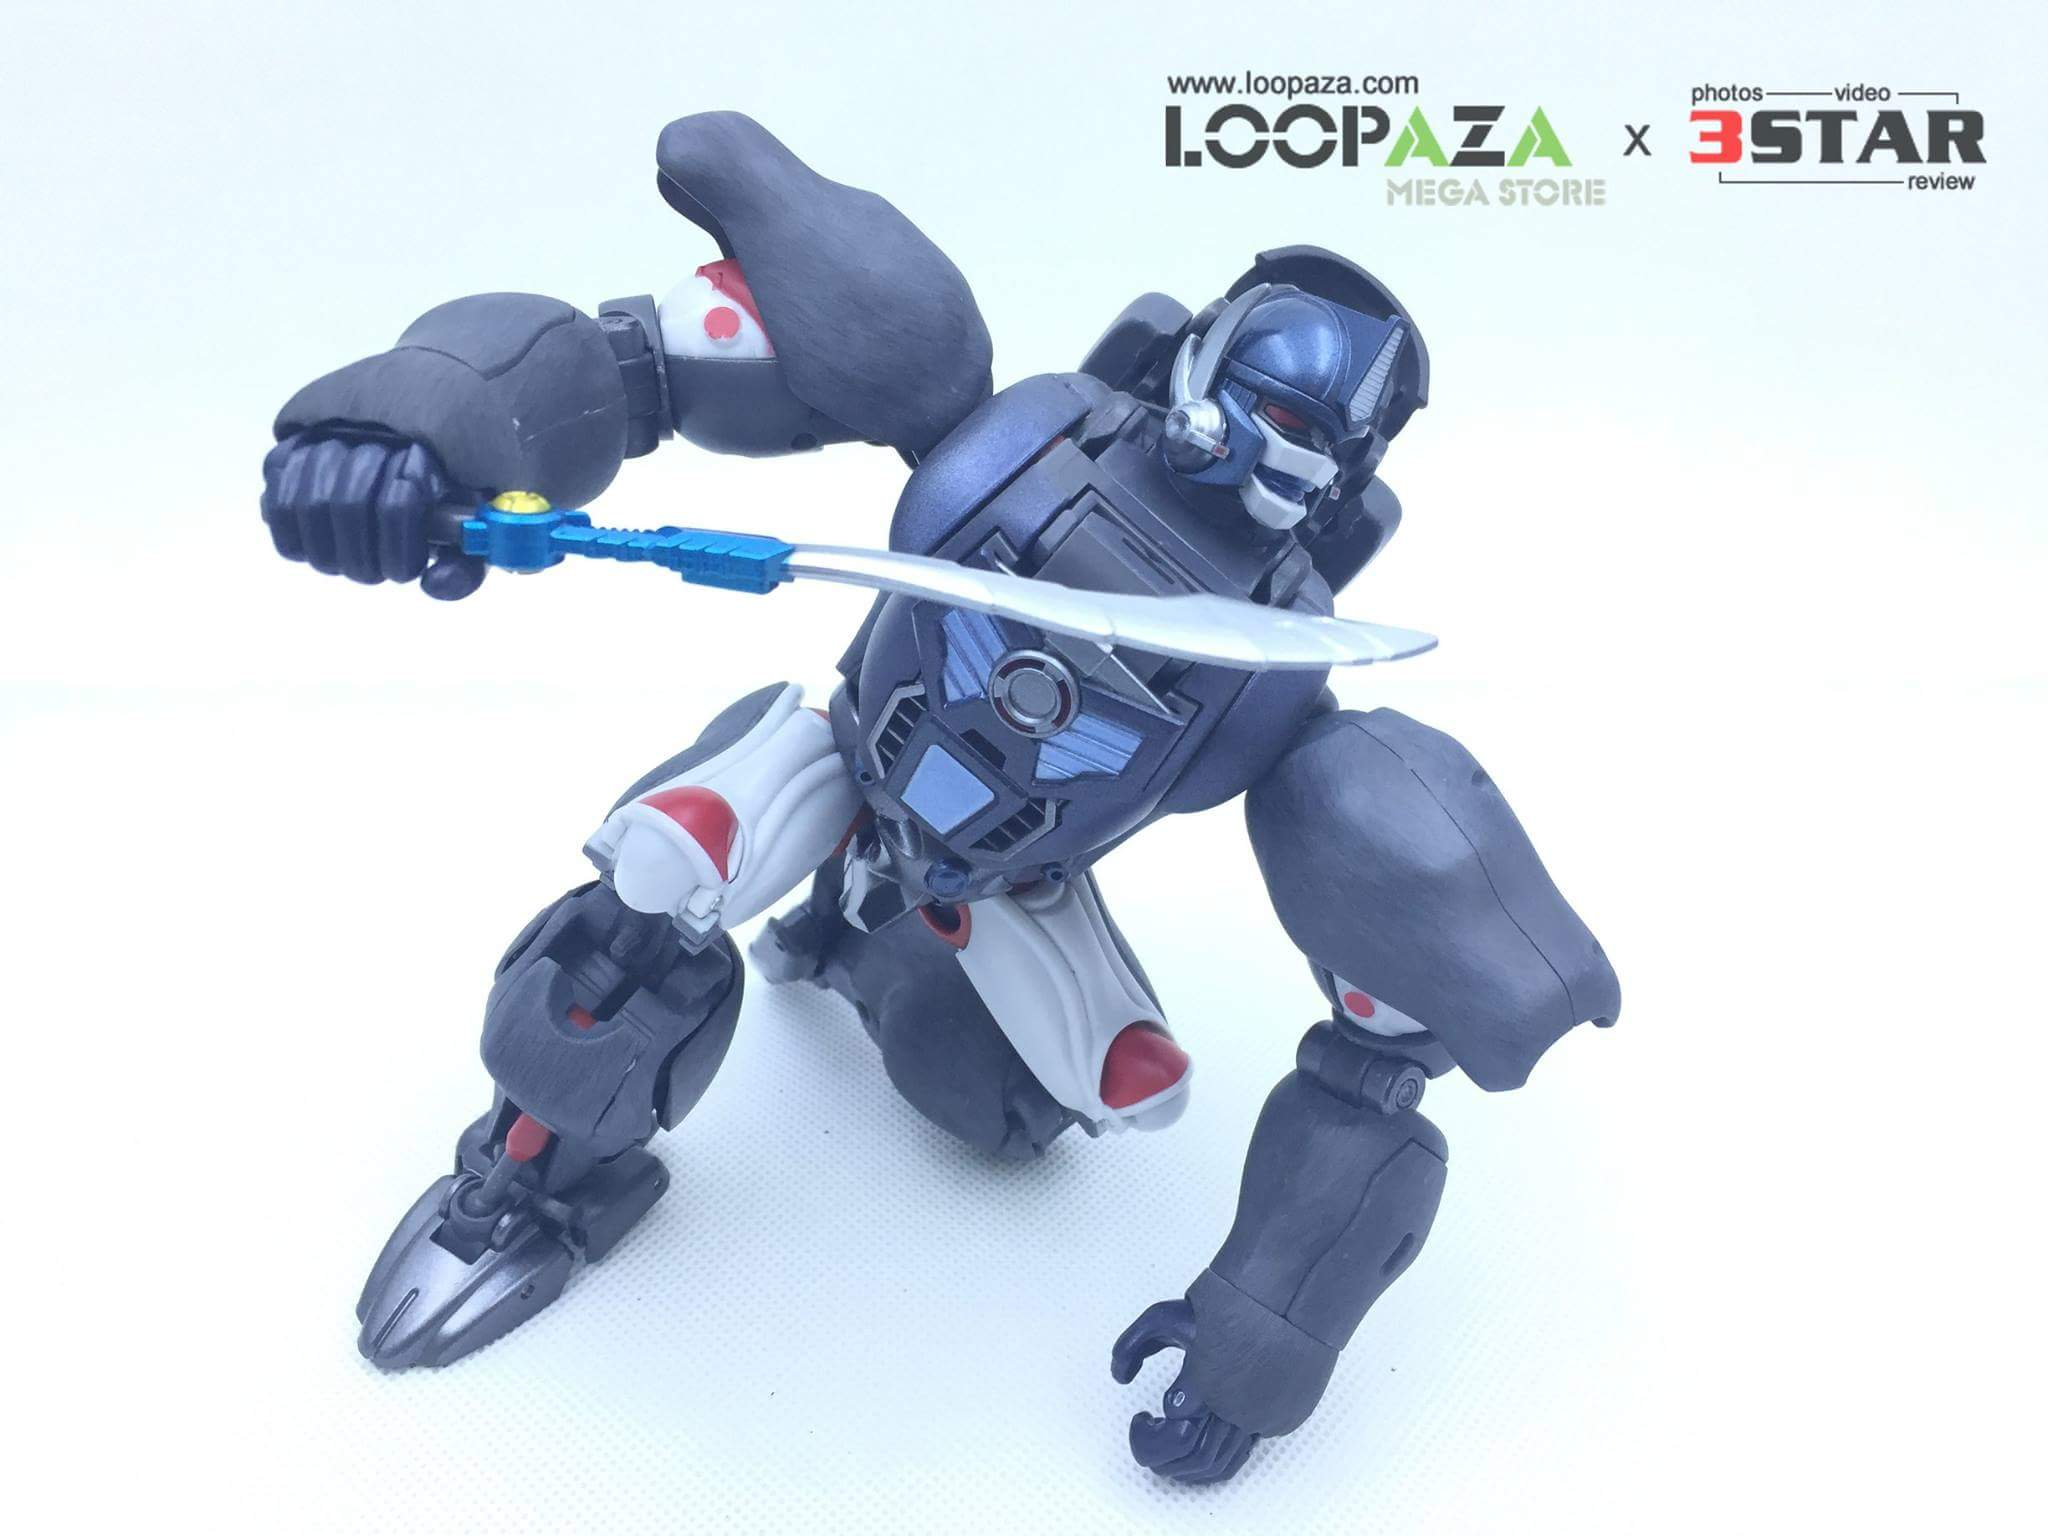 [Masterpiece] MP-32, MP-38 Optimus Primal et MP-38+ Burning Convoy (Beast Wars) - Page 3 7XCCVRNZ